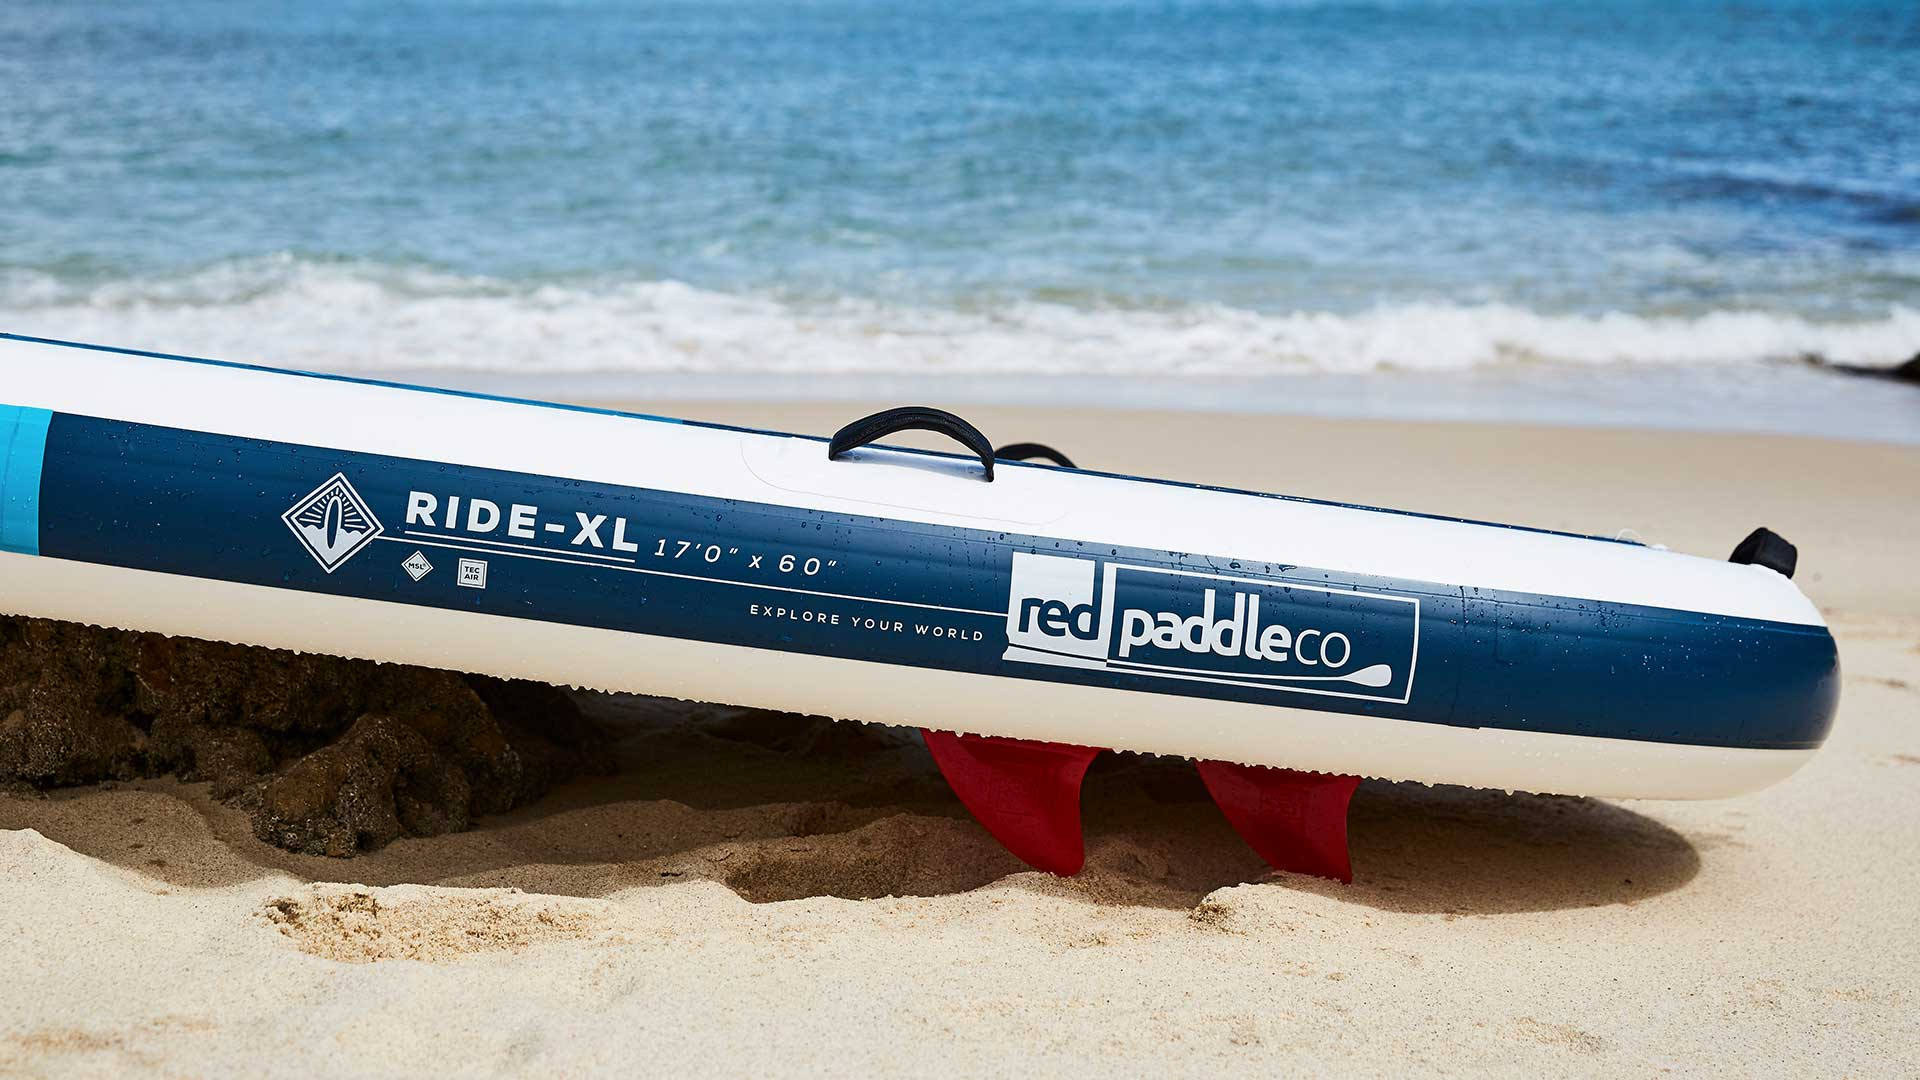 redpaddleco-170-xl-ride-inflatable-paddle-board-desktop-gallery-fins